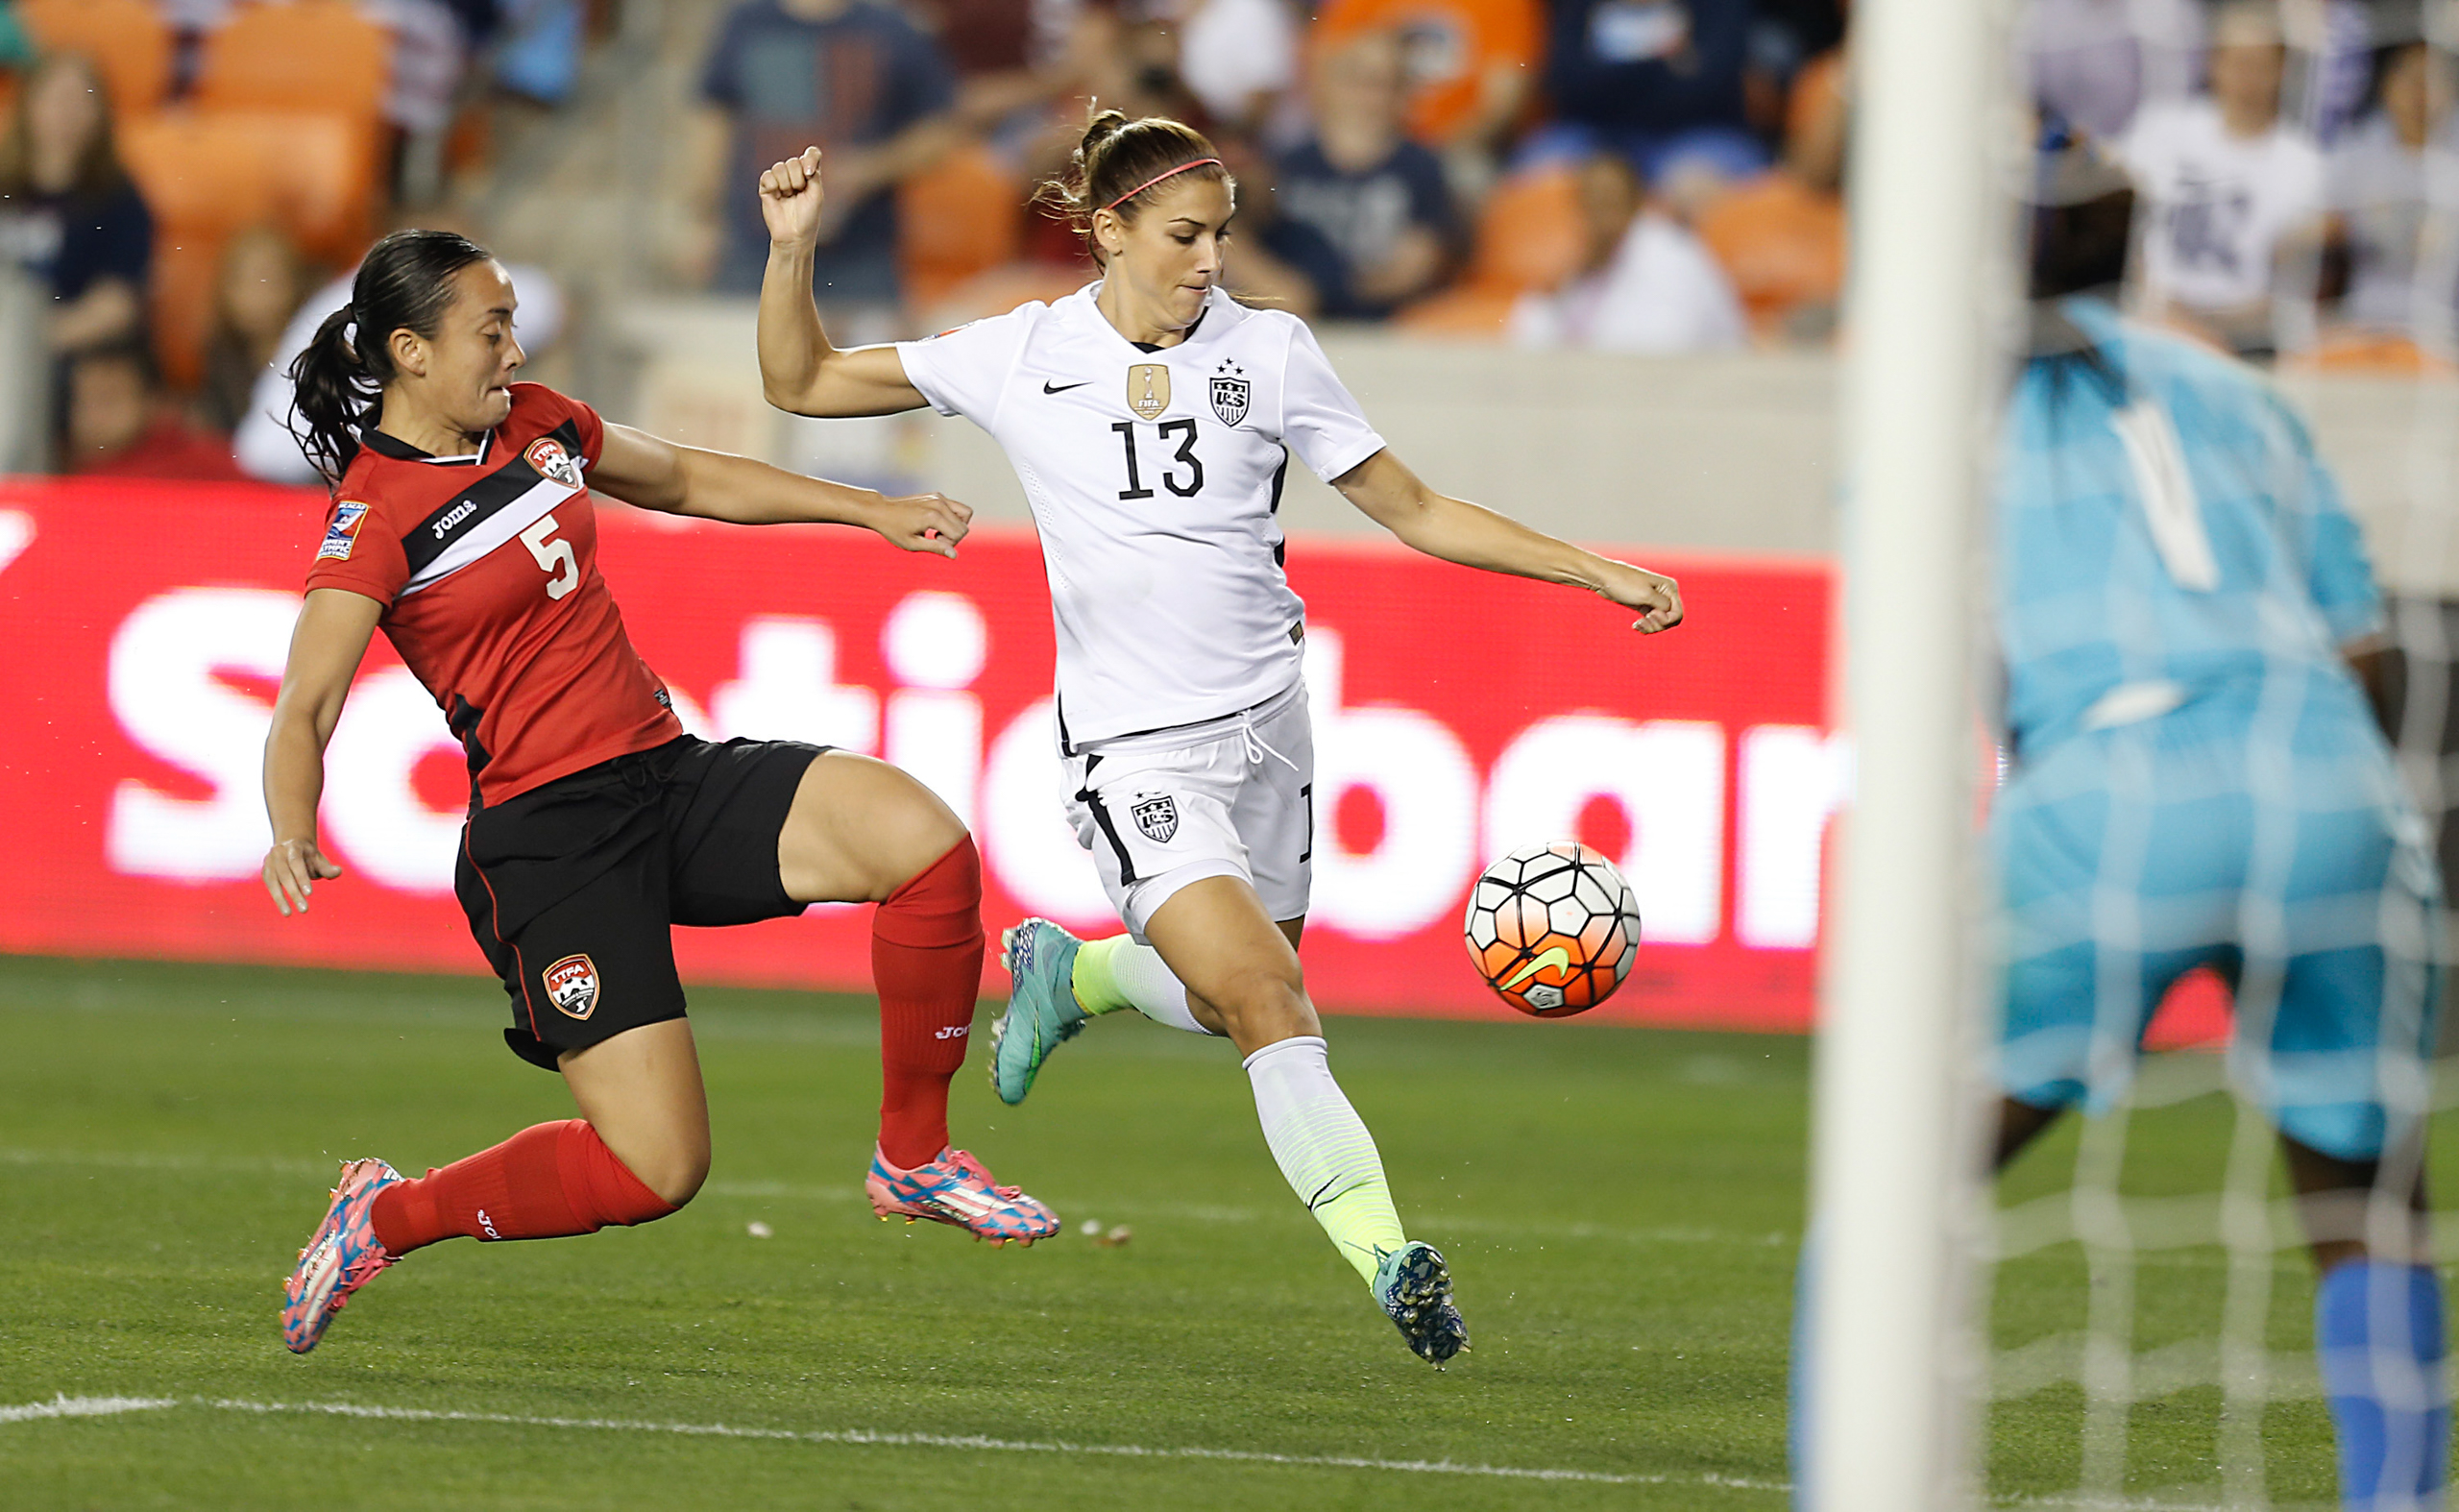 <strong>Alex Morgan, Soccer, USA</strong>A semifinal-winning header at the London Games turned her into a superstar. One year after winning the World Cup, she leads a U.S. squad favored to win gold over France and Brazil.